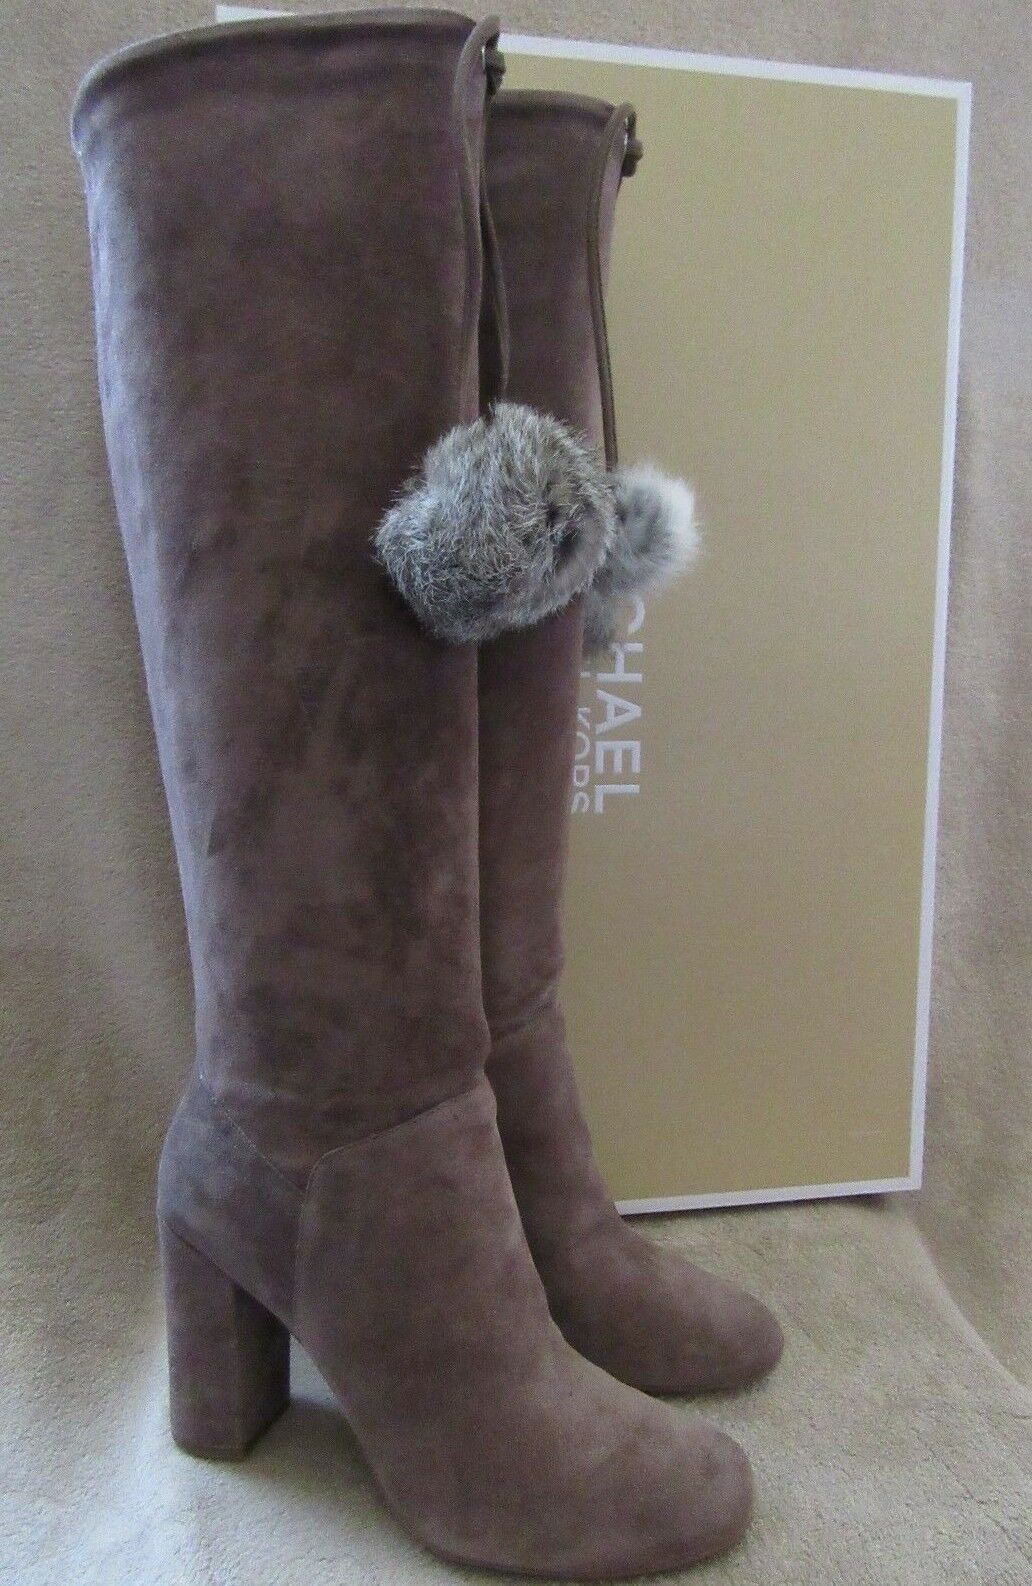 MICHAEL KORS Remi Tall Taupe Suede & Rabbit Fur Boots Shoes US 8.5 NWB